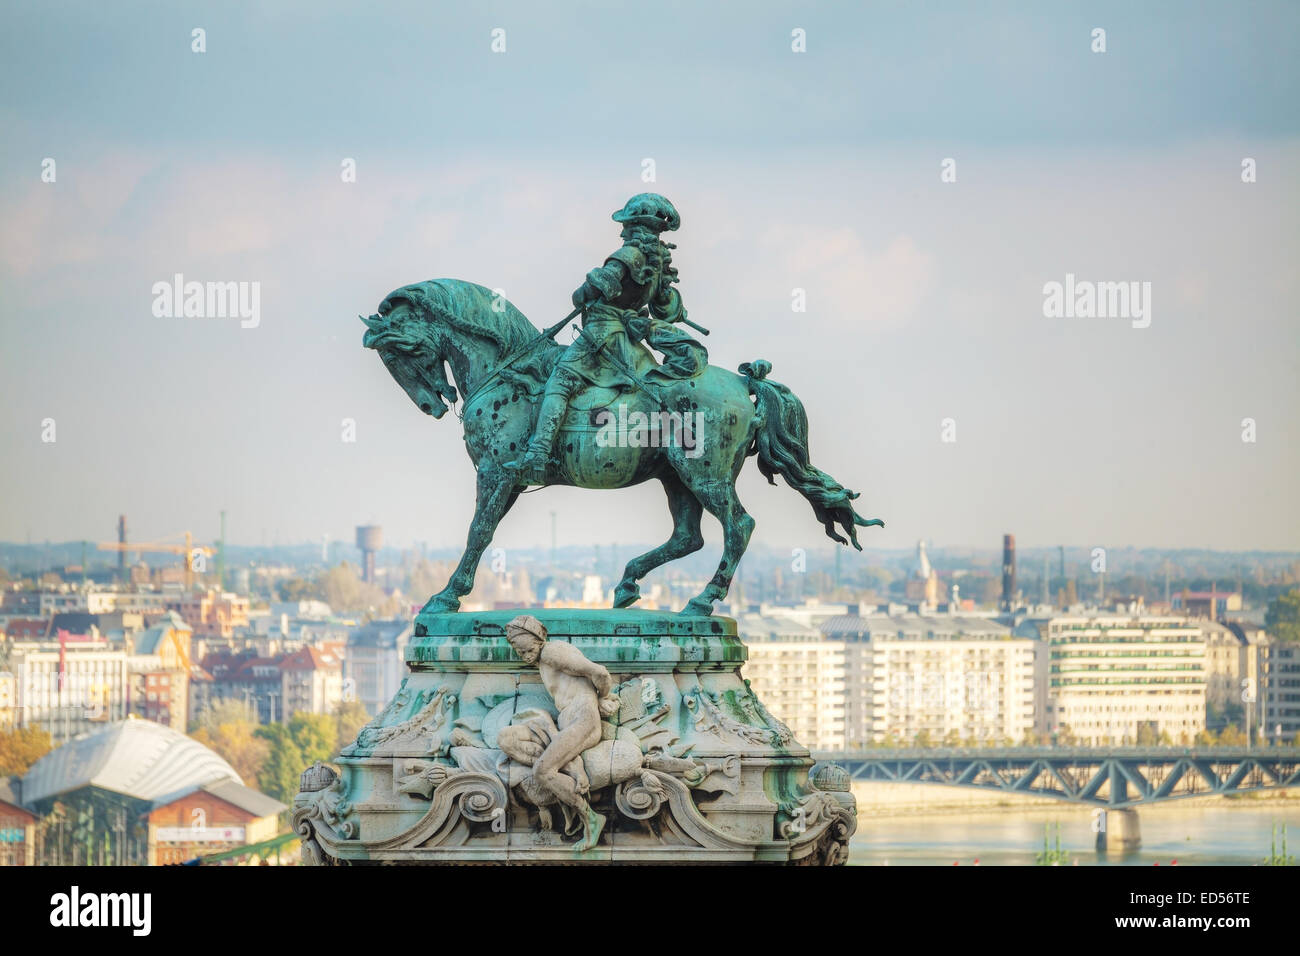 BUDAPEST - OCTOBER 21: Statue of Prince Eugene of Savoy at the Royal Castle on October 21, 2014 in Budapest, Hungary. Stock Photo